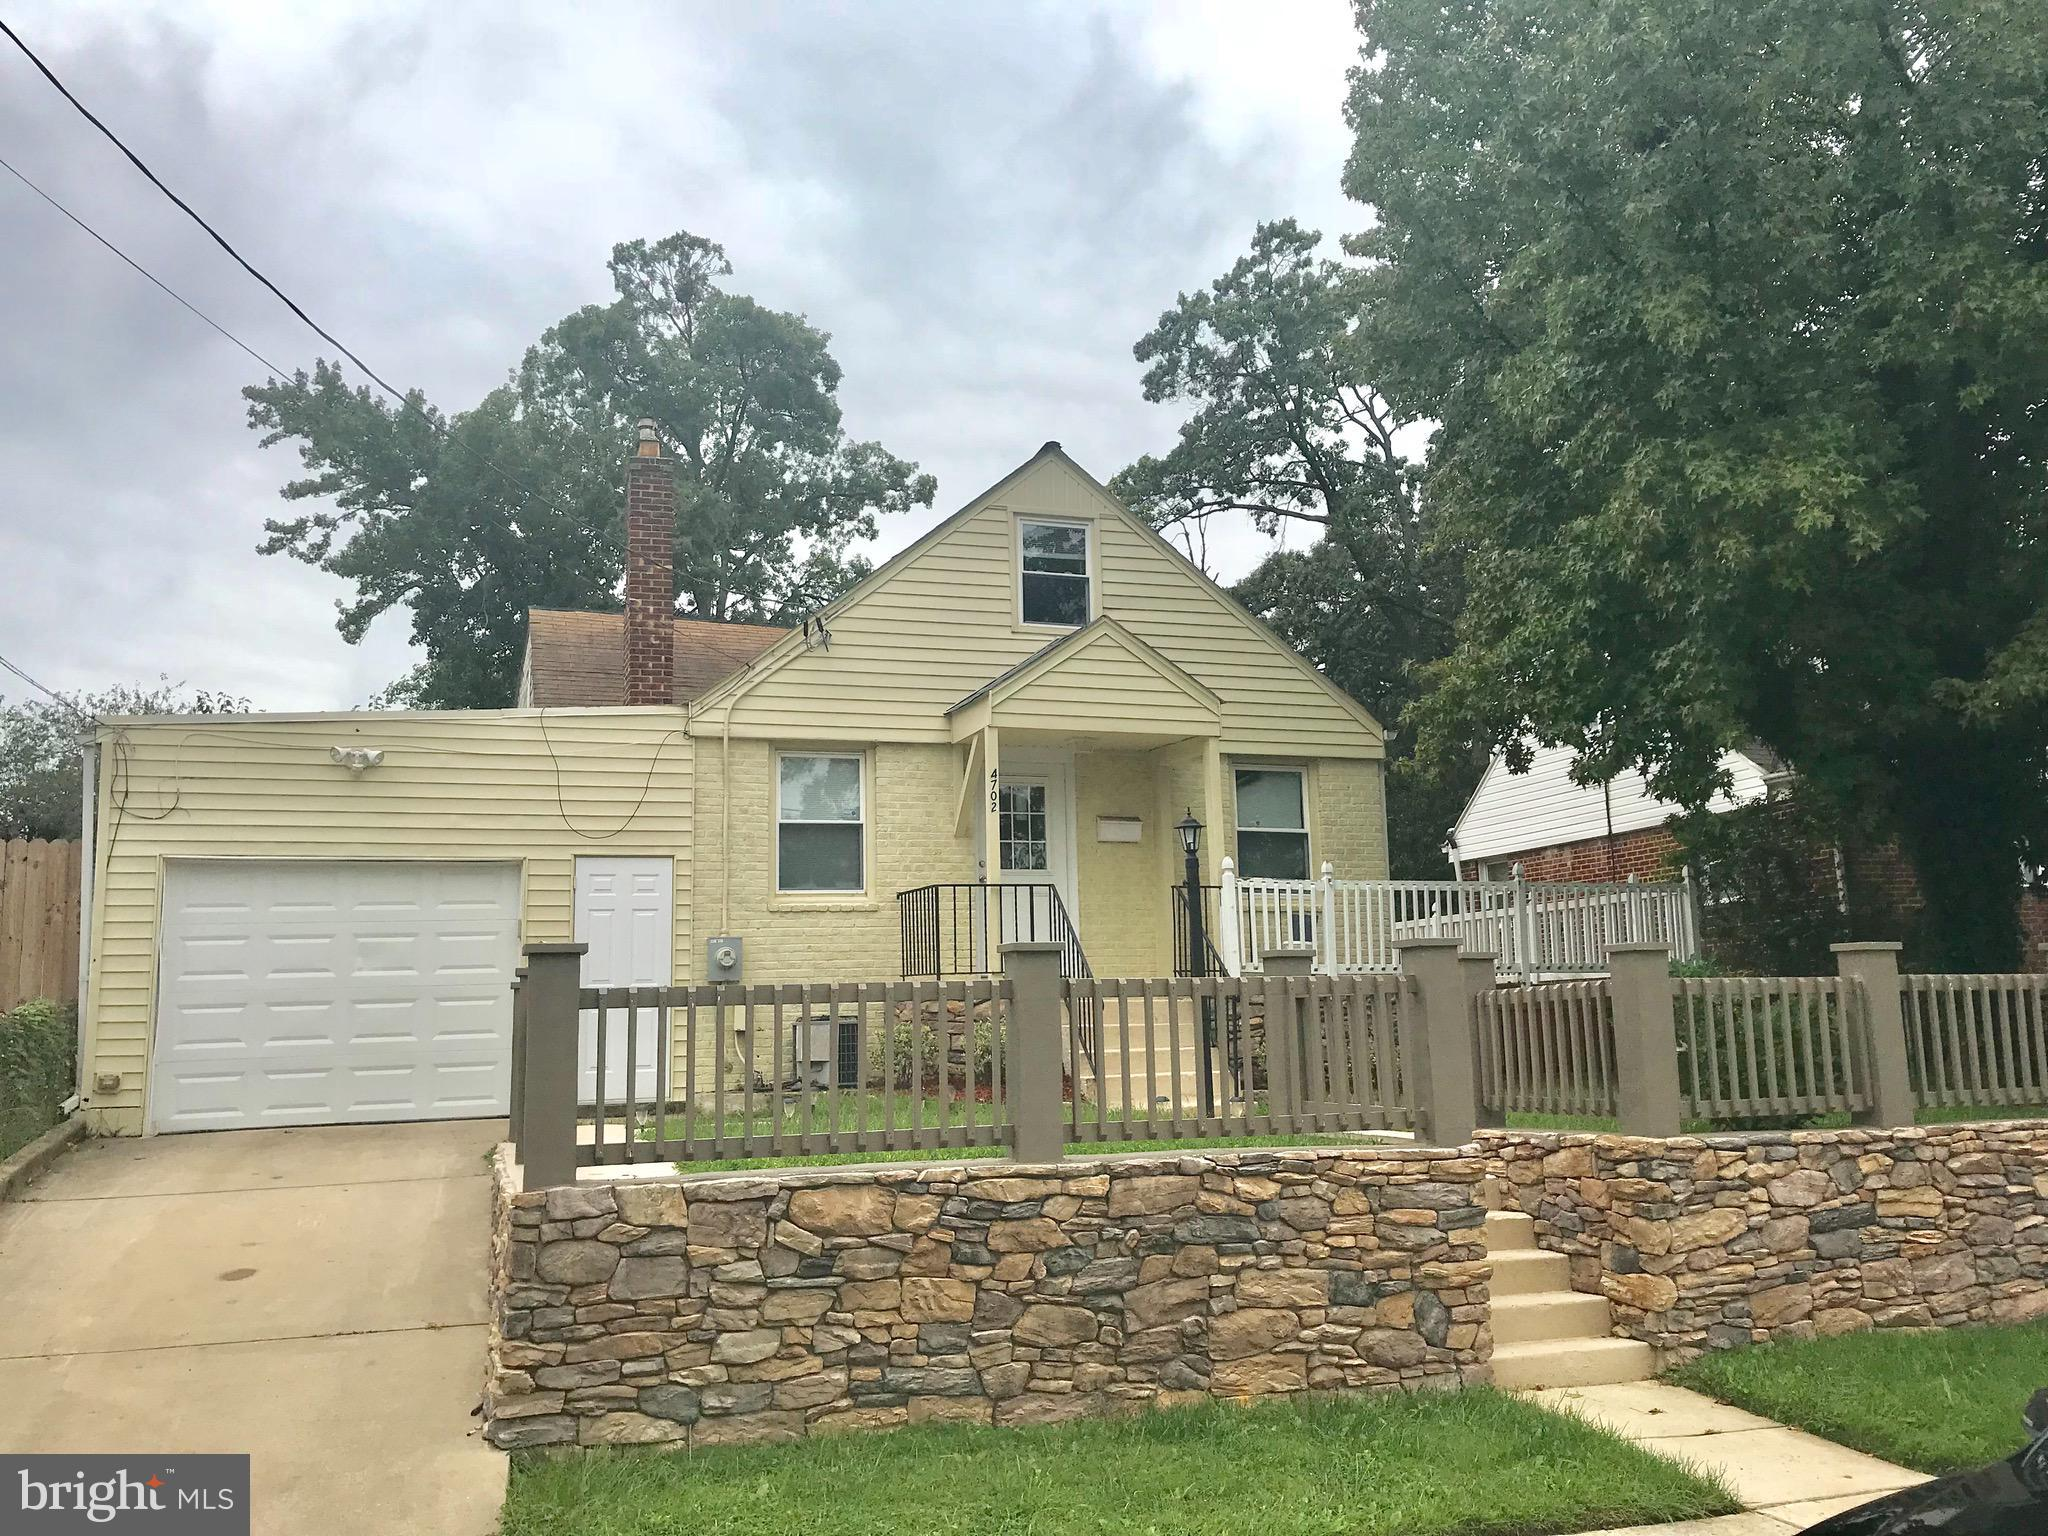 4702 68TH PLACE, HYATTSVILLE, MD 20784